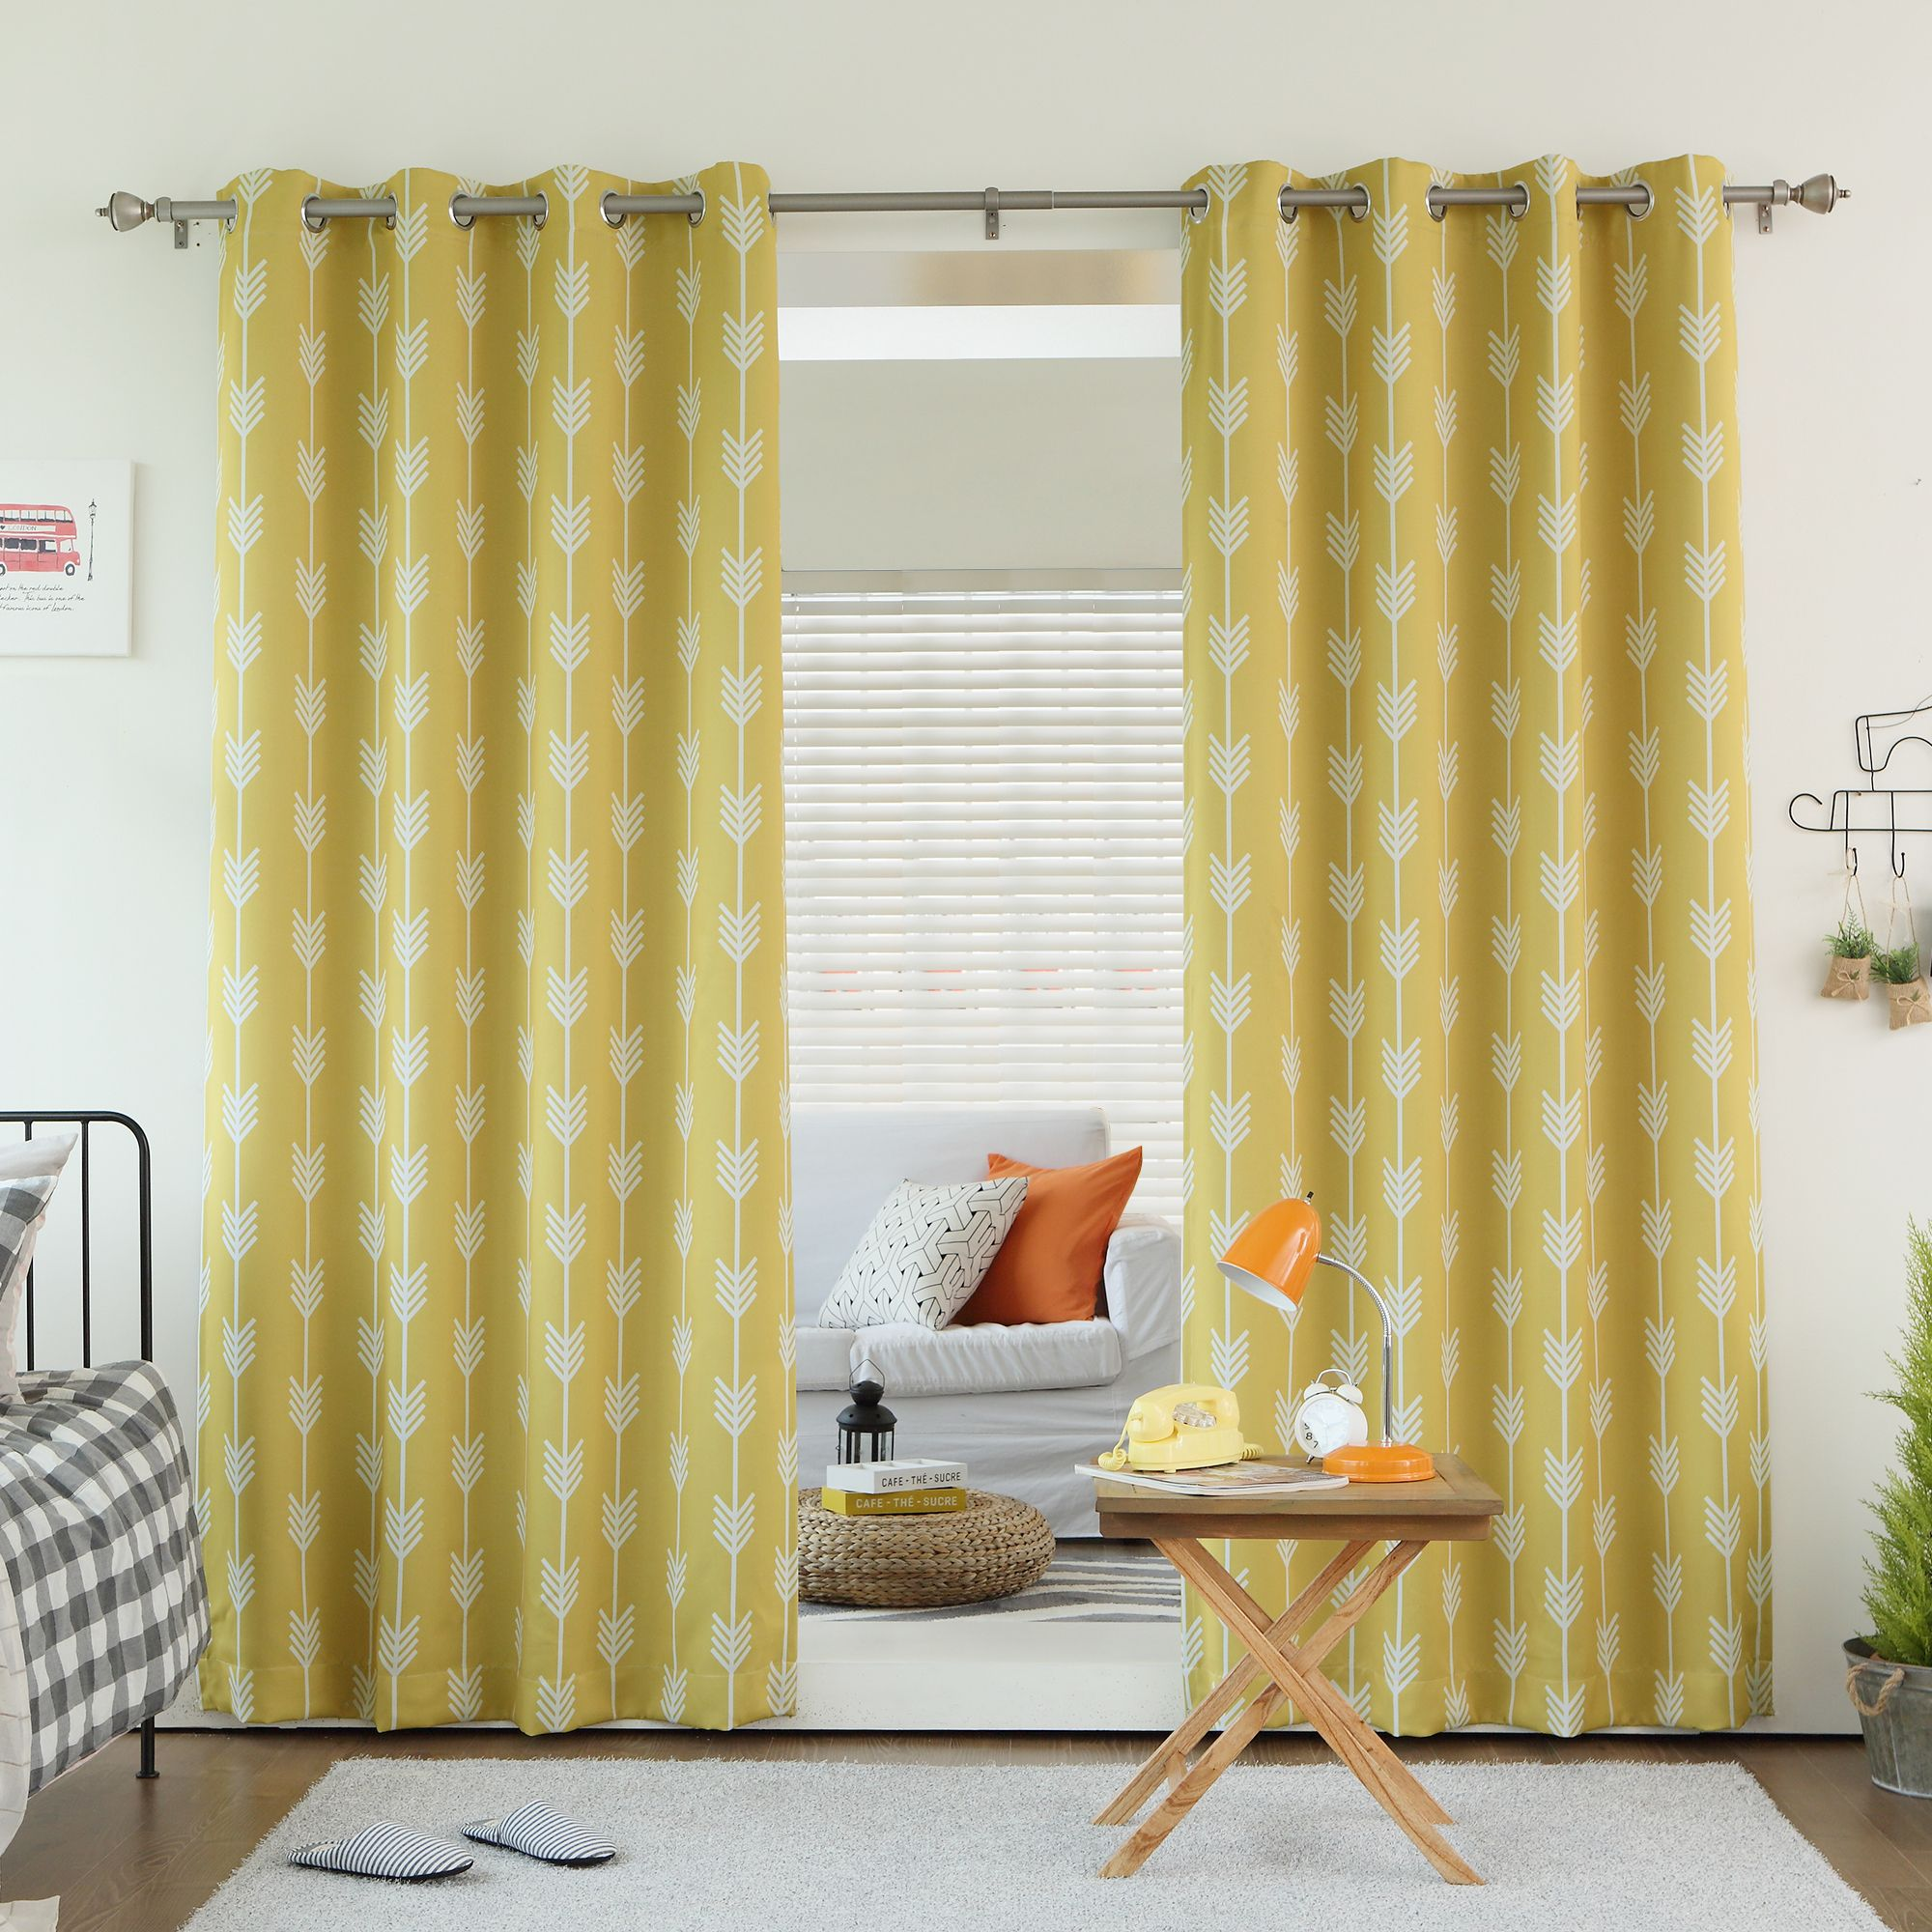 Curtain pair overstock shopping great deals on lights out curtains - Aurora Home Arrow Room Darkening Blackout Grommet 84 Inch Curtain Panel Pair By Aurora Home